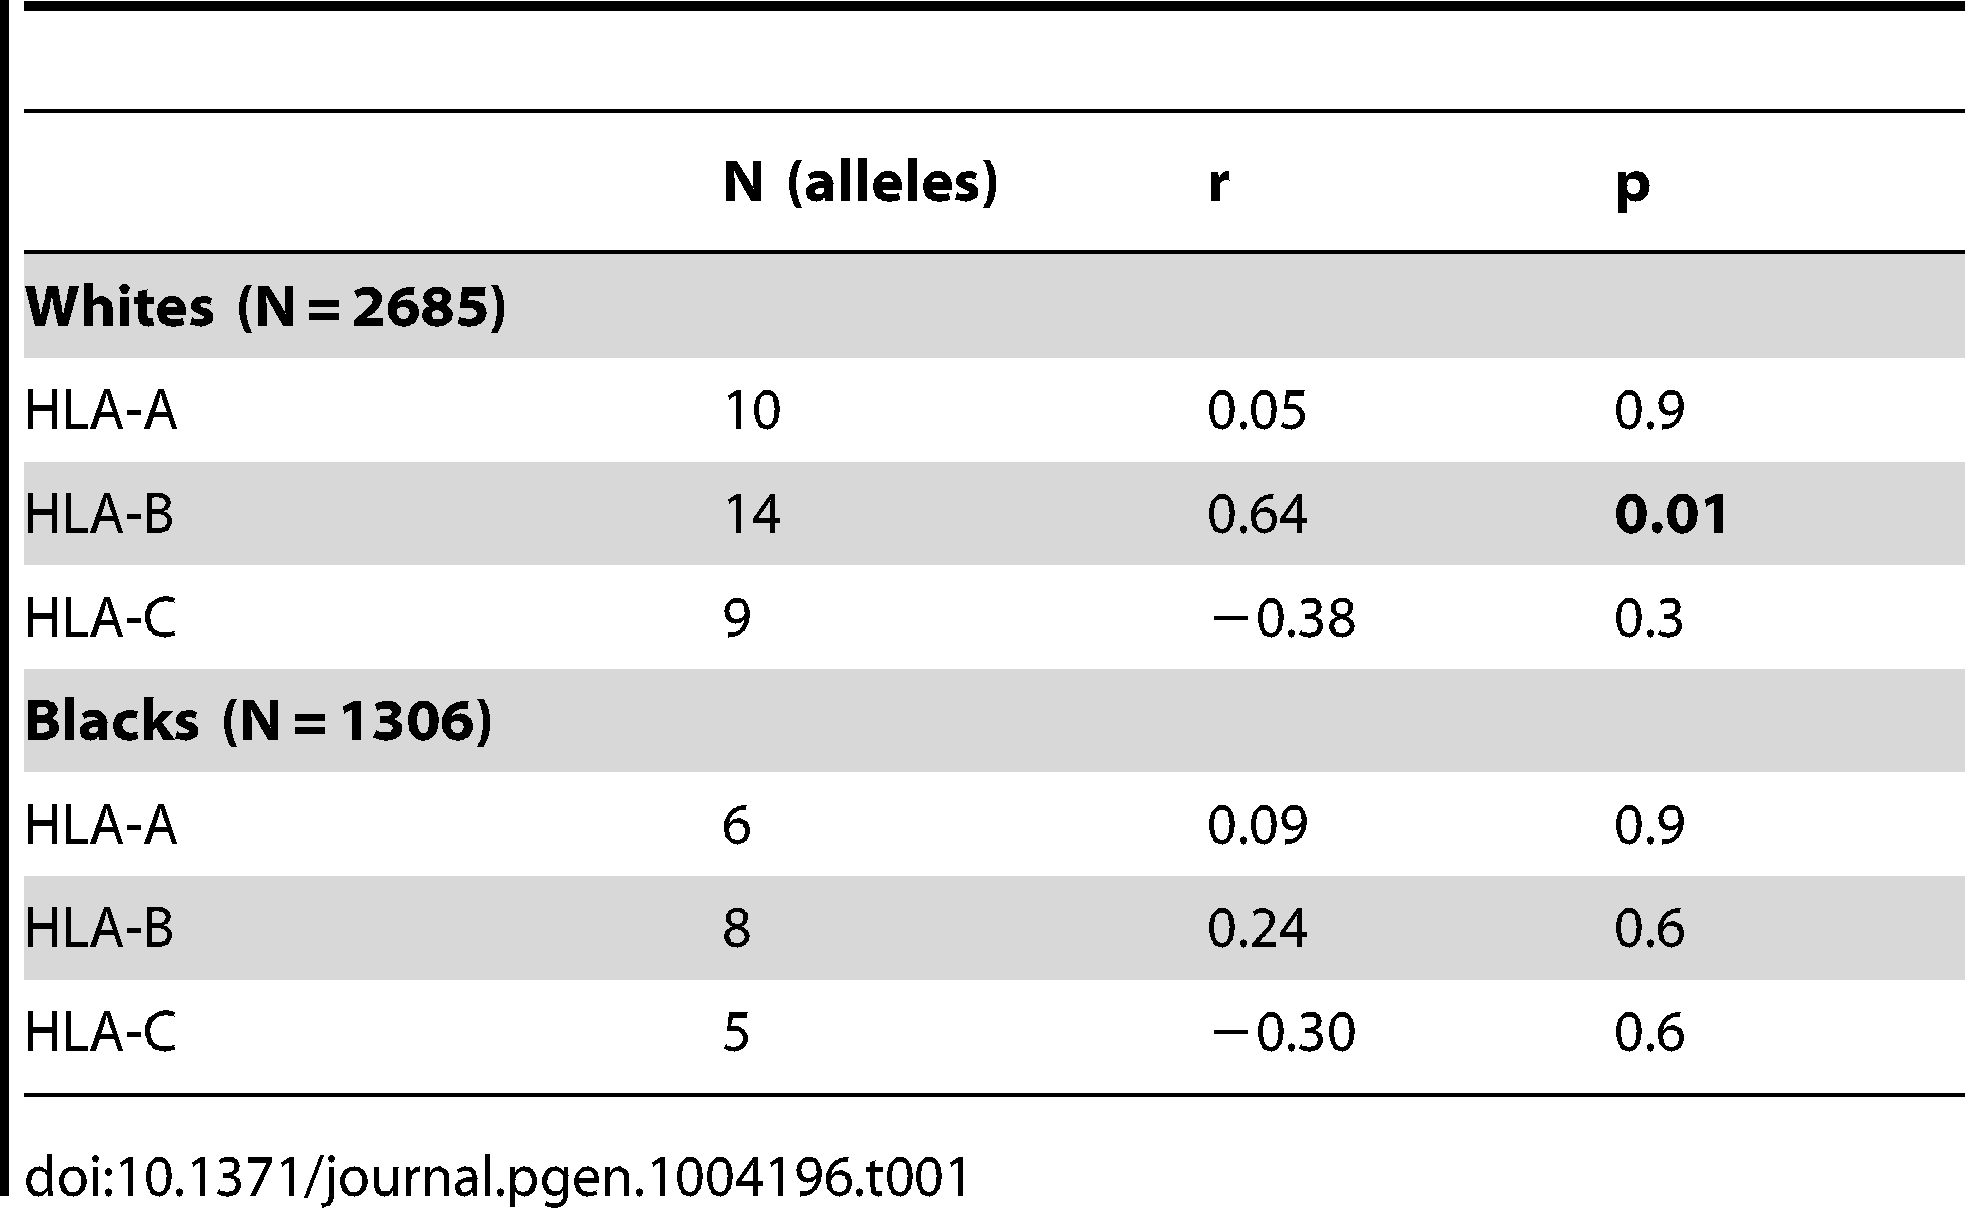 Spearman correlation between LILRB2 binding strength and odds ratios of <i>HLA</i> alleles (p<0.05) for viral load control in HIV-1-infected individuals.